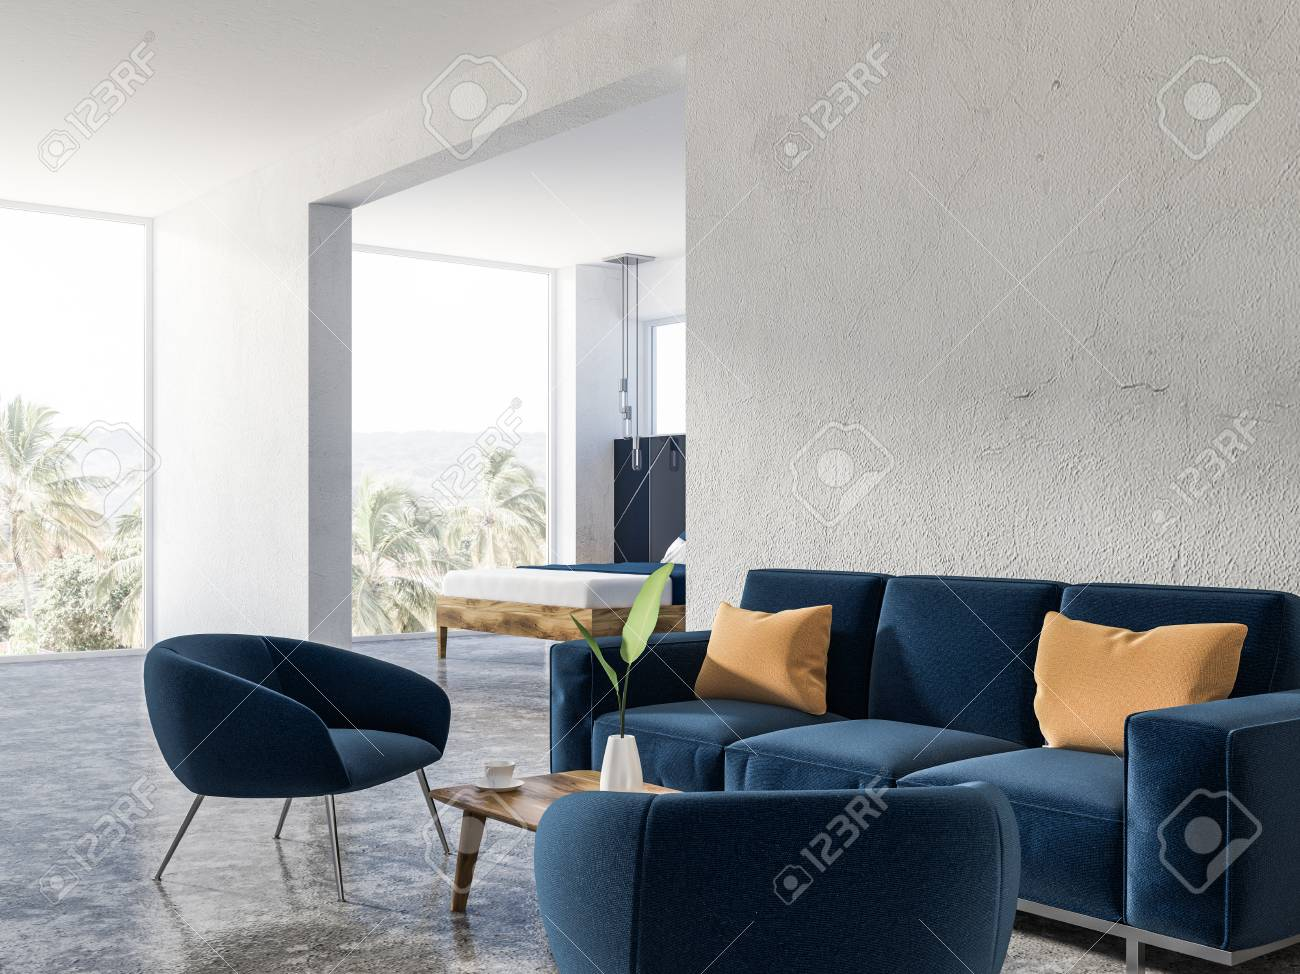 White Living Room Interior With Soft Blue Couch And Armchairs